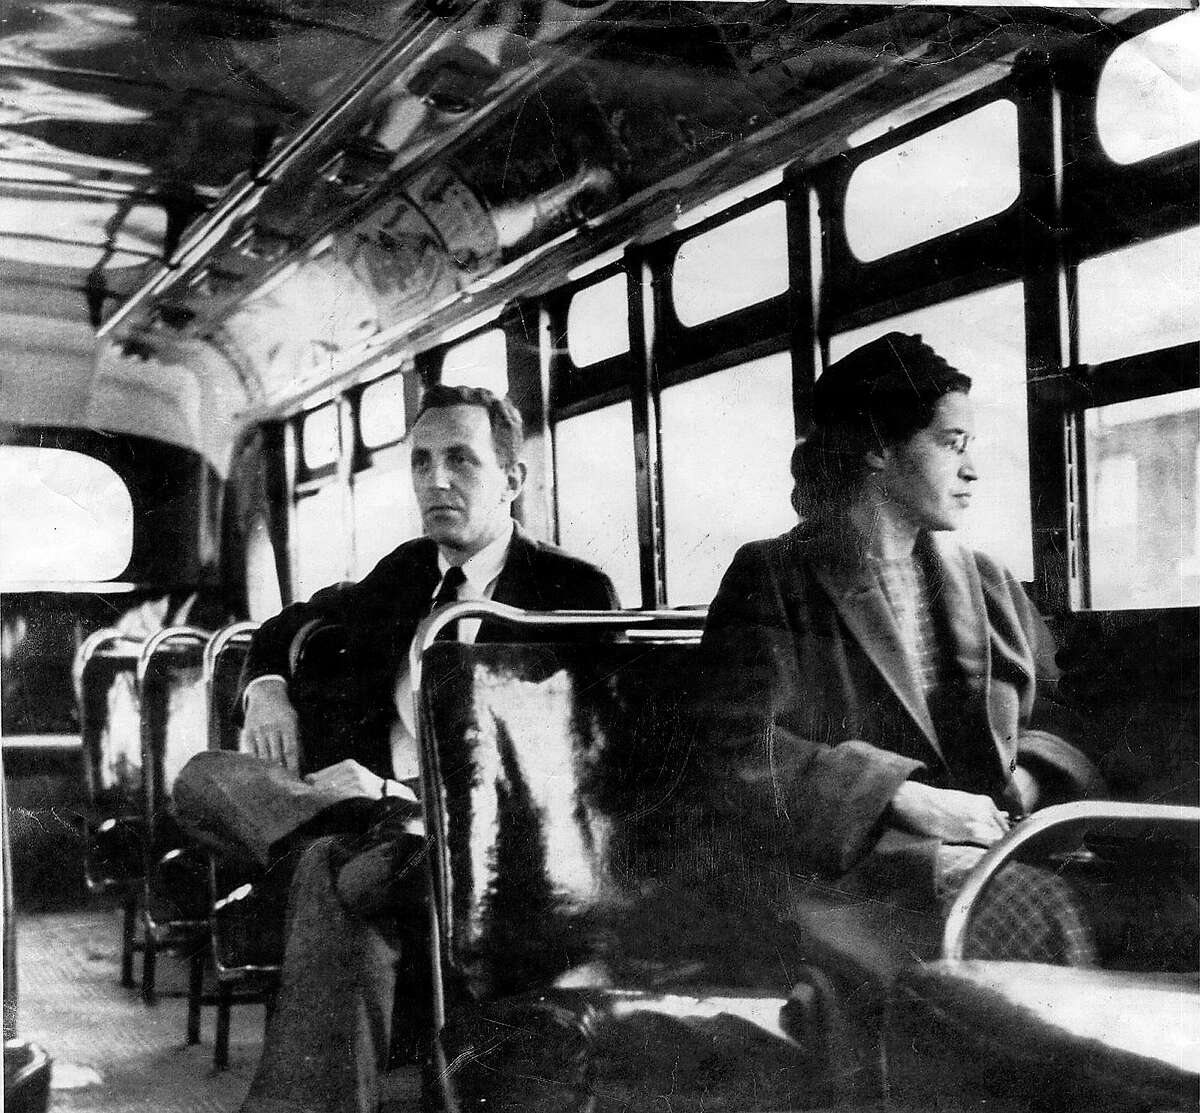 This undated file photo shows Rosa Parks riding on the Montgomery Area Transit System bus. Parks, whose refusal to give up her bus seat to a white man sparked the modern civil rights movement, died Monday Oct. 24, 2005. She was 92.